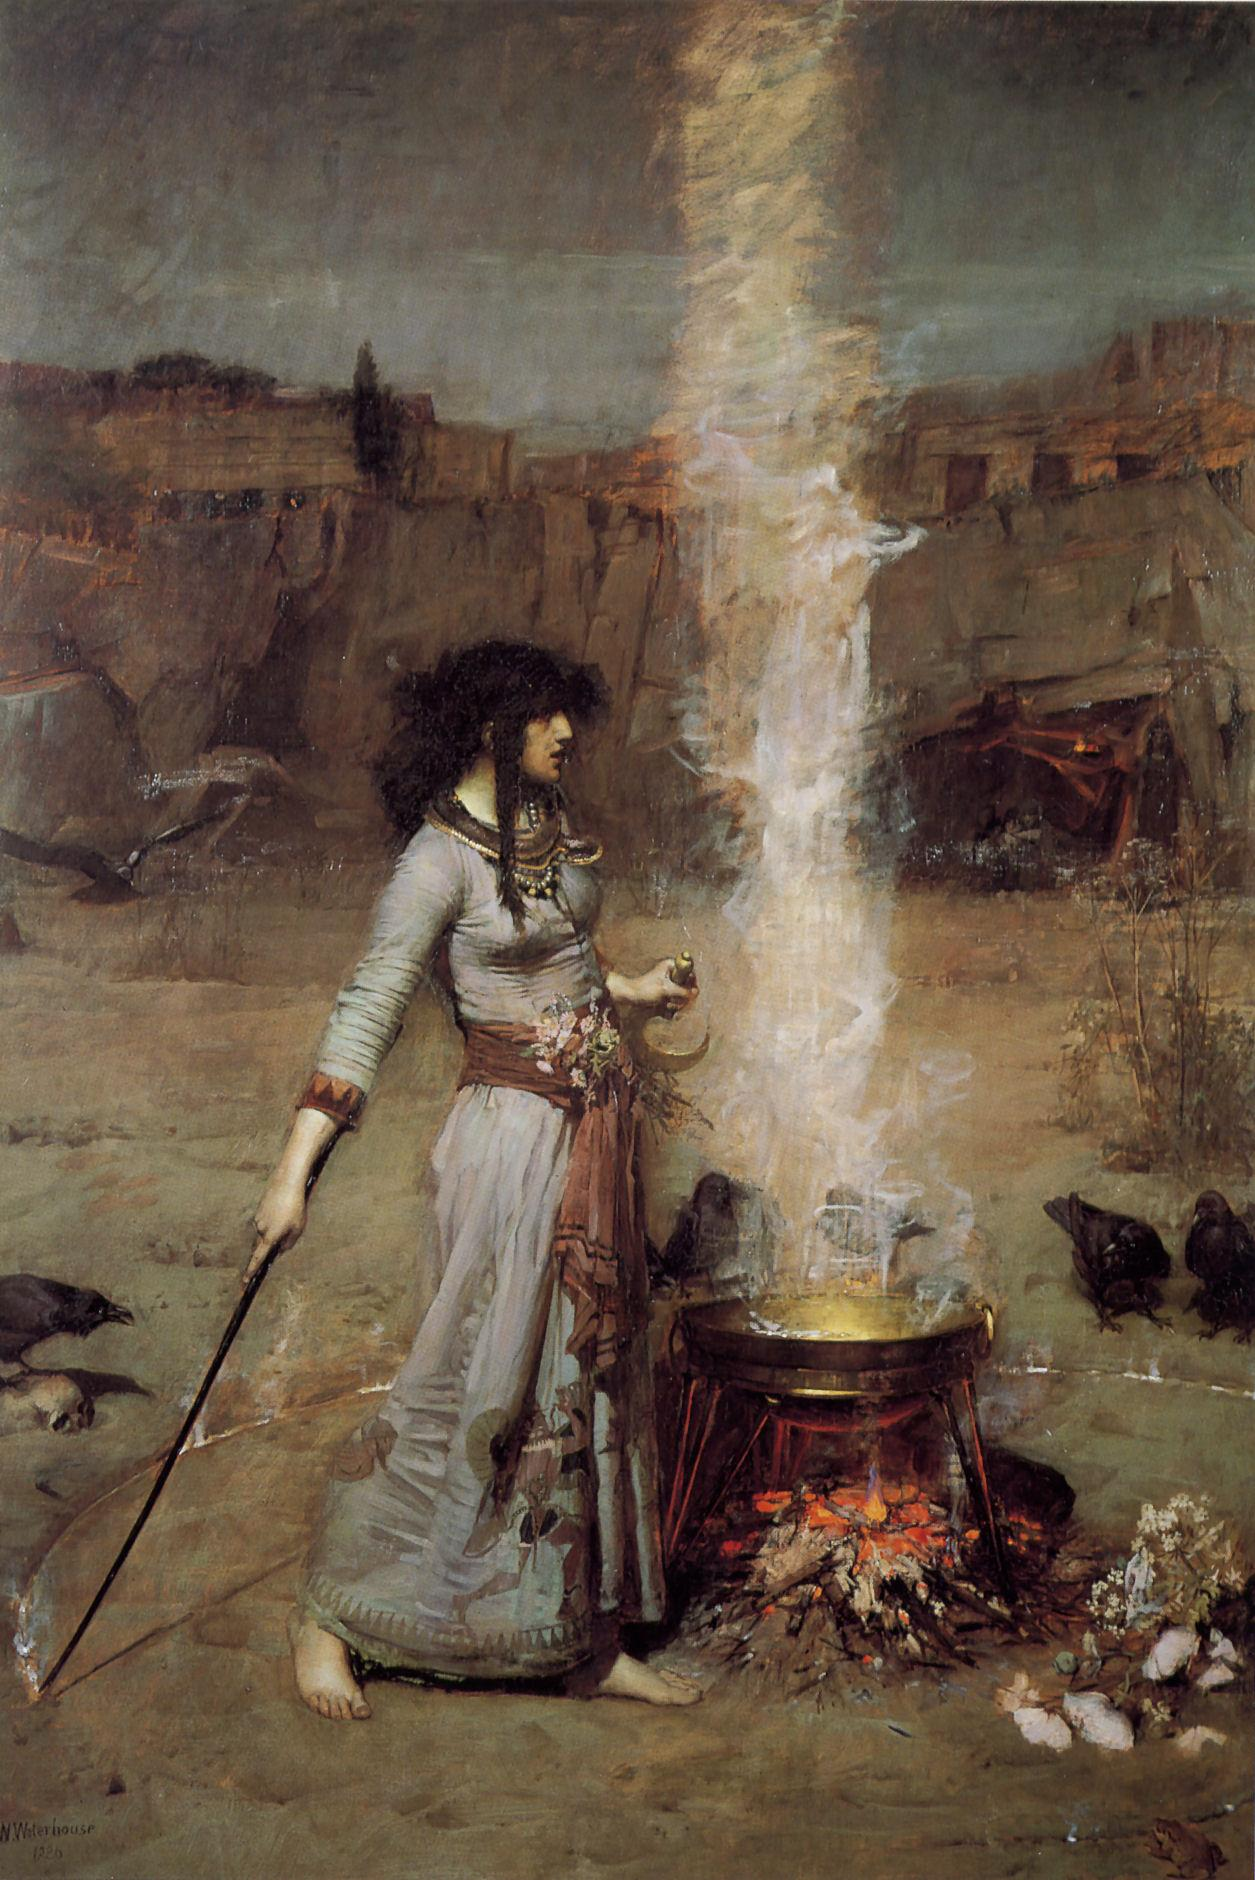 The Magic Circle, John William Waterhouse. 1886